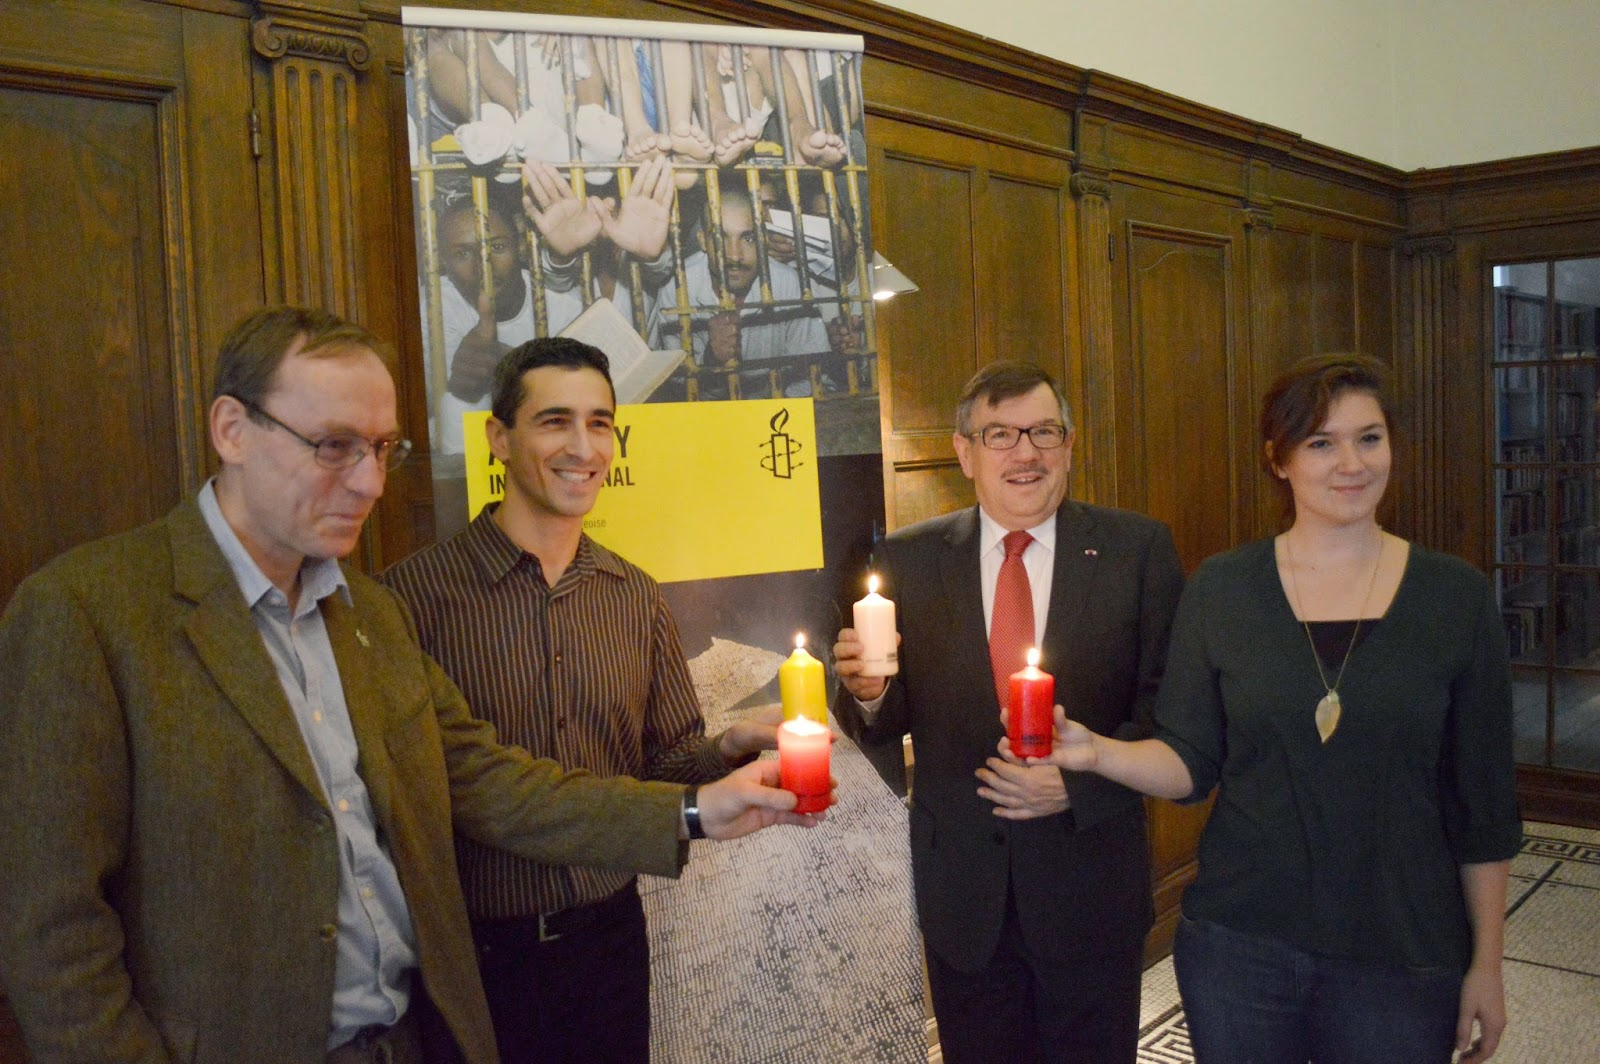 http://amnesty-luxembourg-photos.blogspot.com/2014/11/press-conference-candles-campagin-2014.html